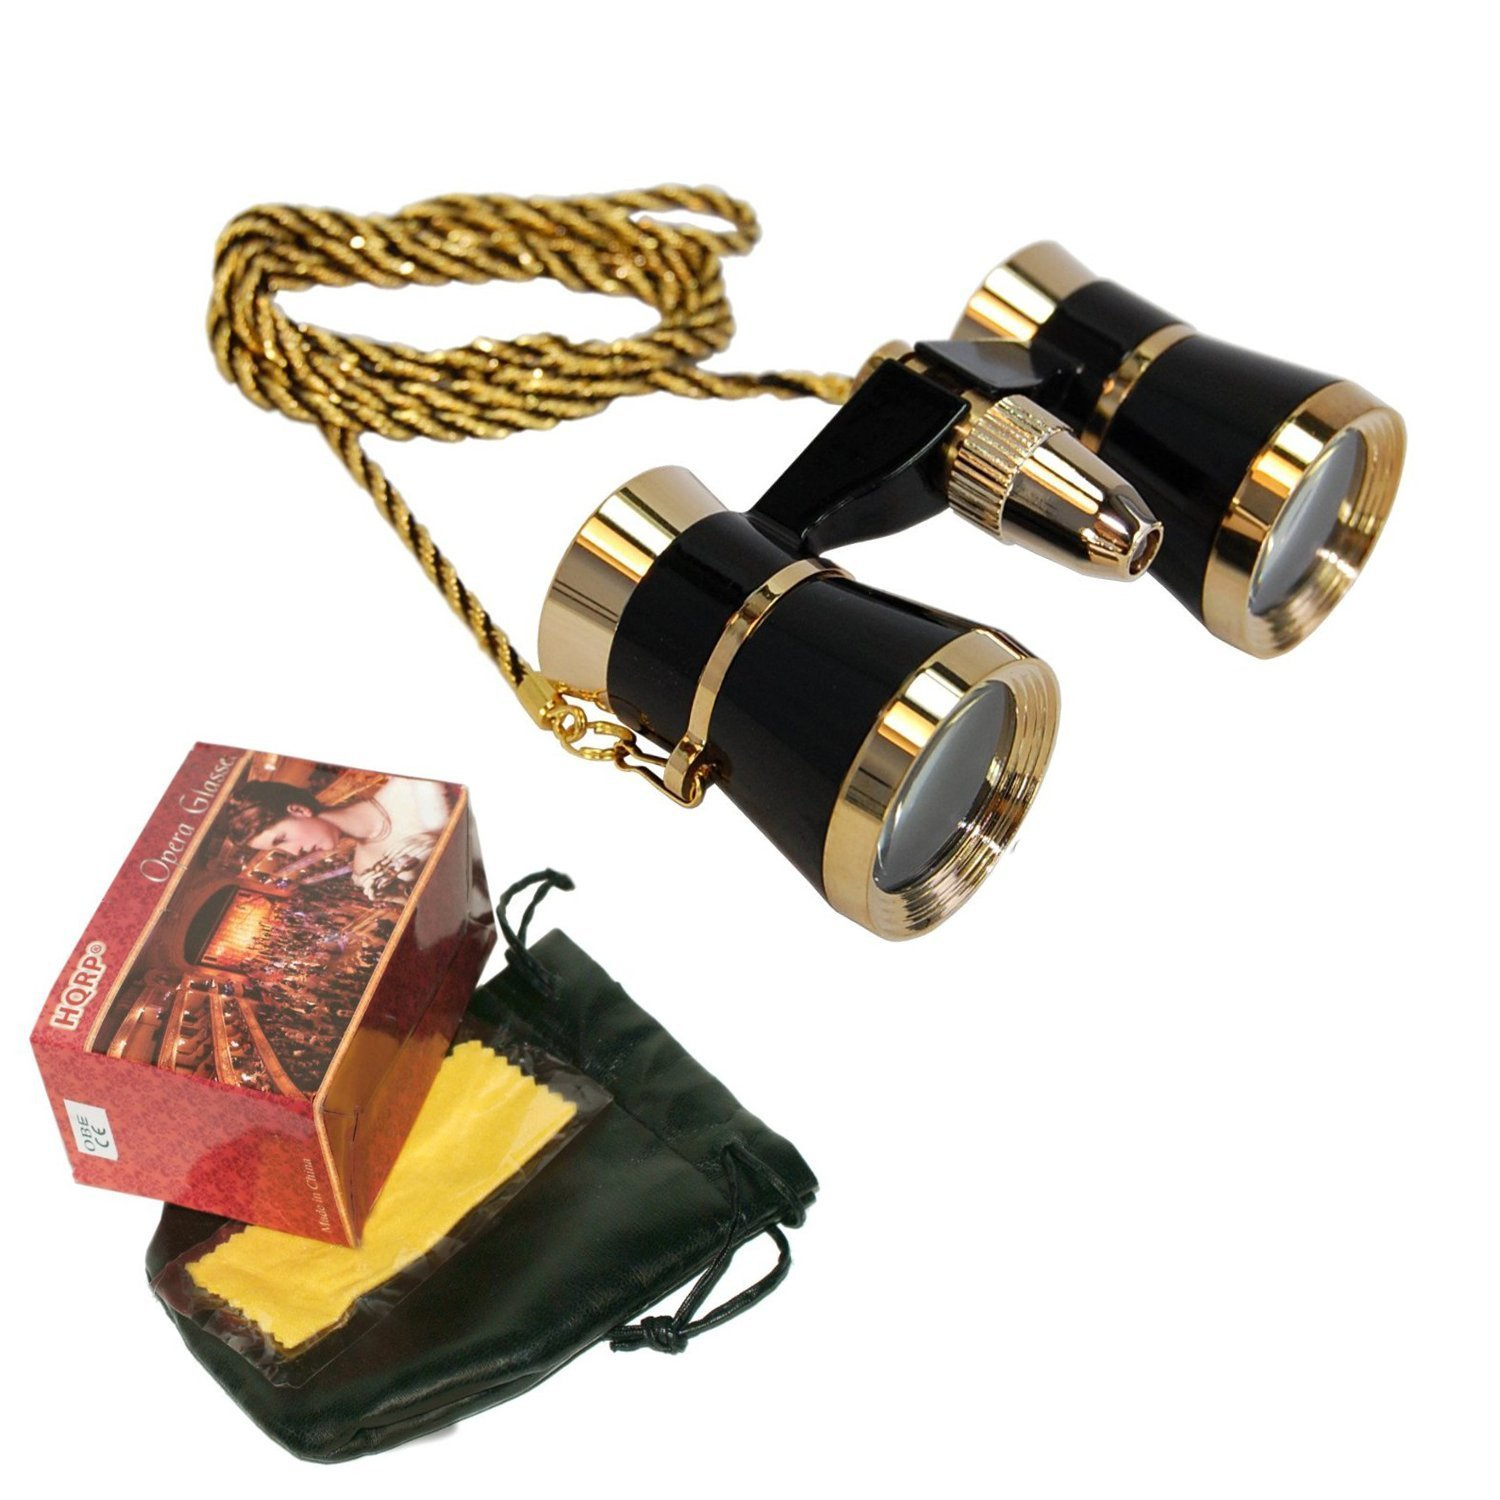 HQRP 3 x 25 Black Opera Glasses / Binocular with Red Reading Light, with Golden Trim / Golden Necklace